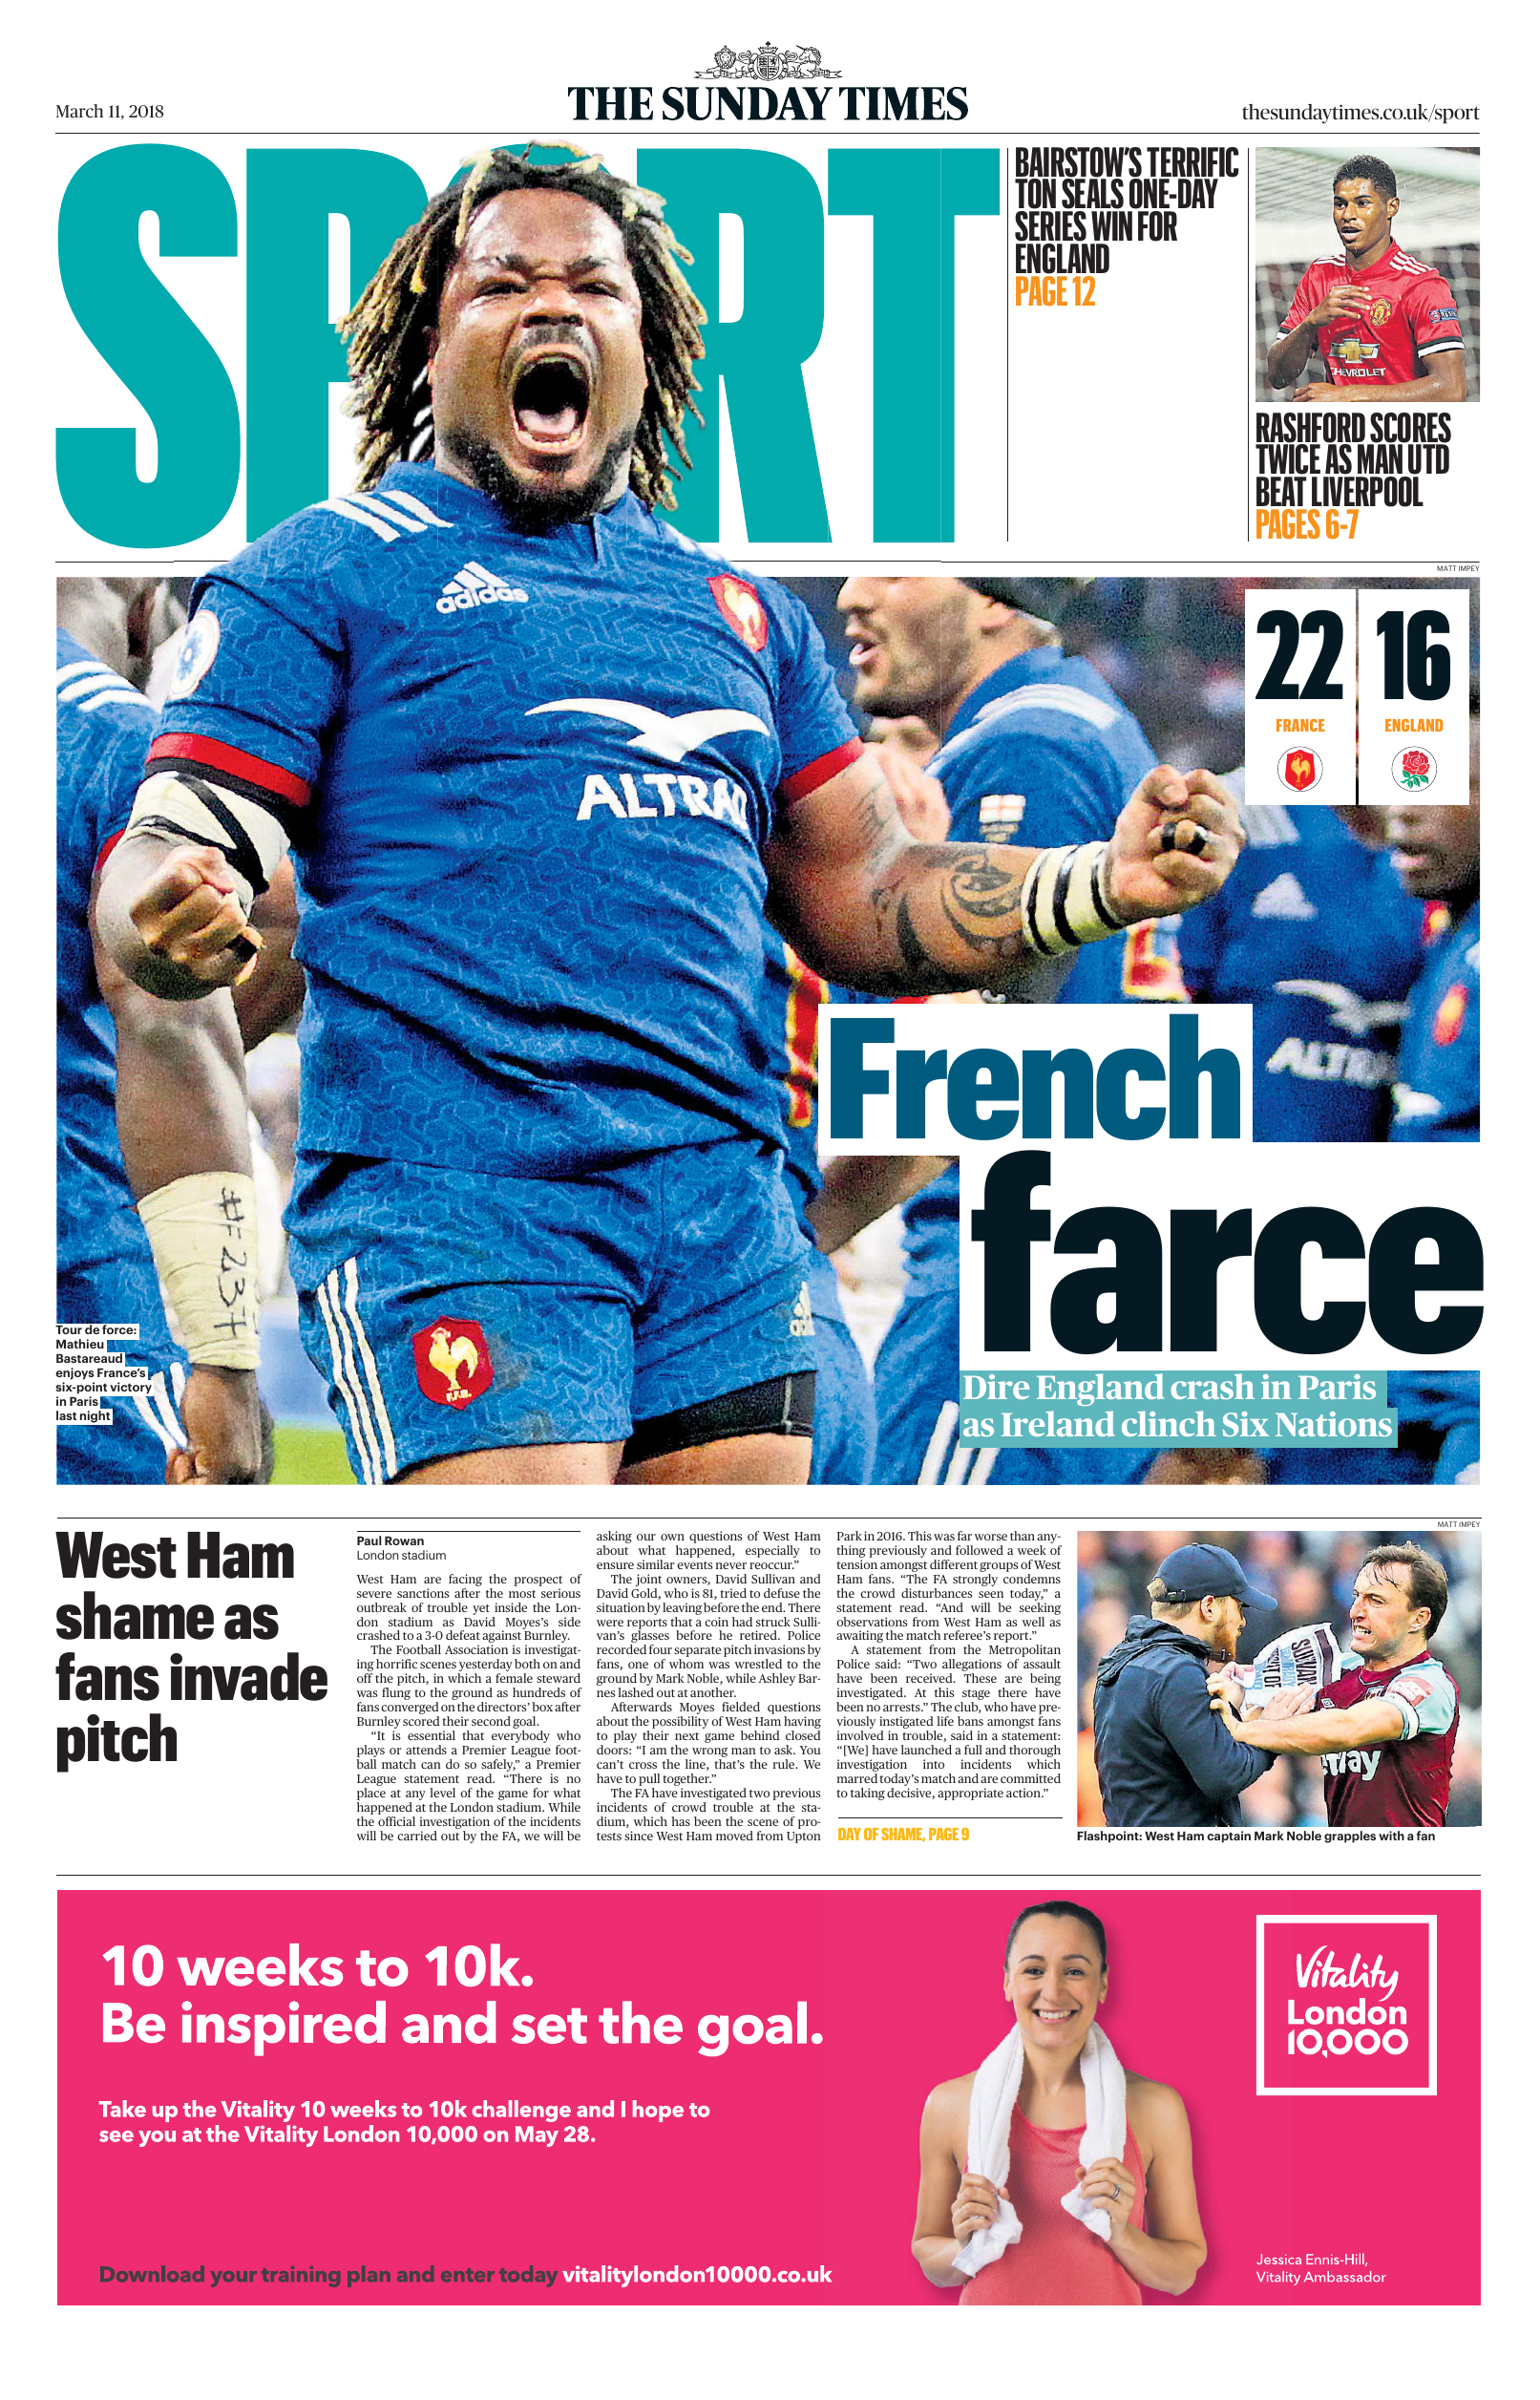 4b4505b15d8 The Sunday Times Sport - 11 March 2018